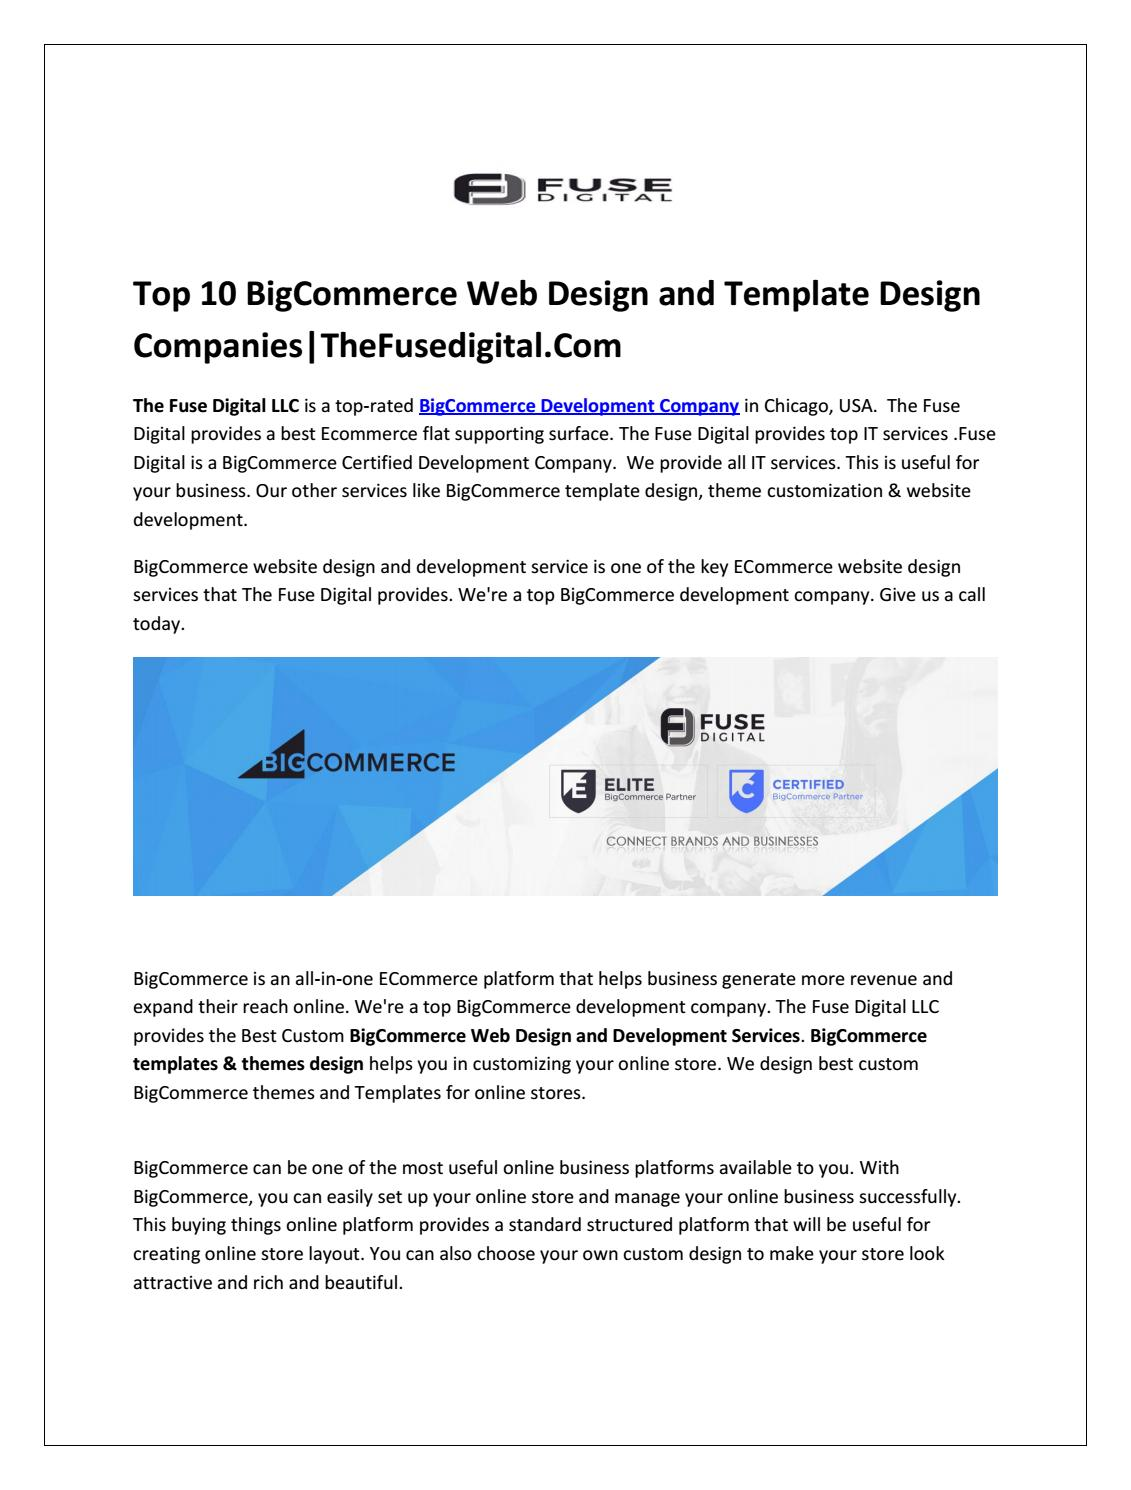 Top 10 BigCommerce Web Design and Template Design Companies